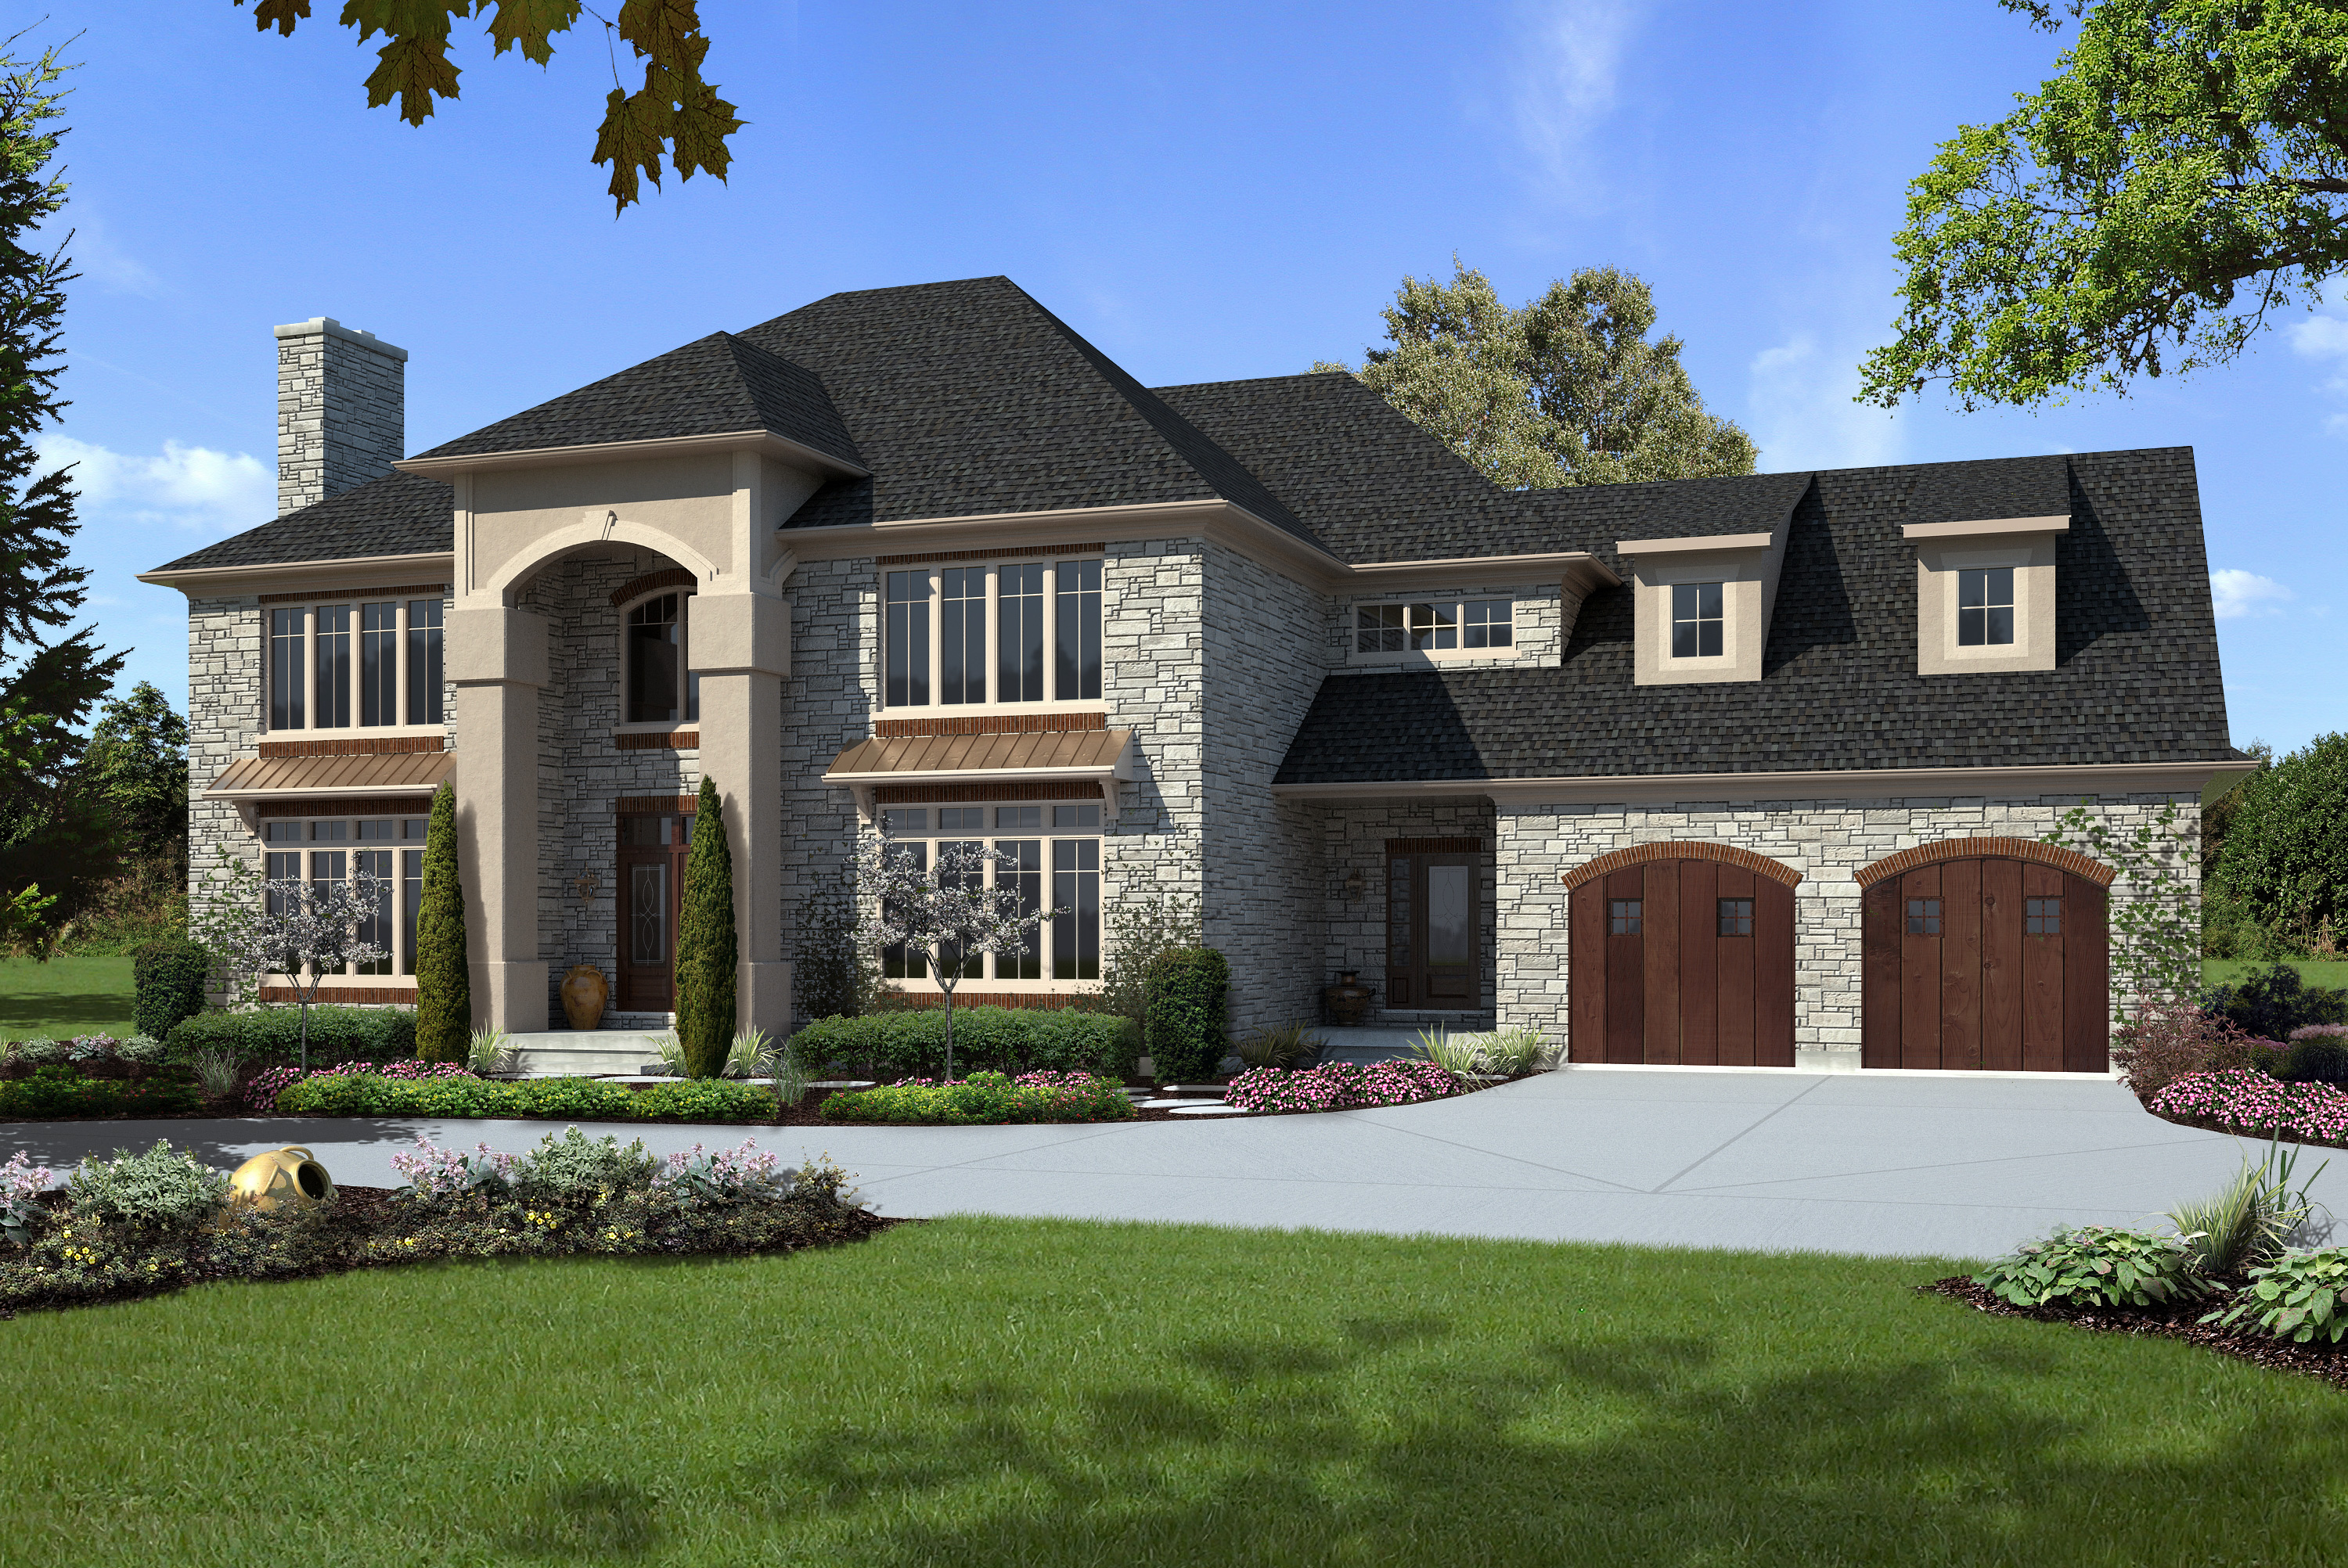 Custom House Plans the christopher custom home plan Custom Home Designs Custom House Plans Custom Home Plans Custom Floor Plans At Houseplansnet